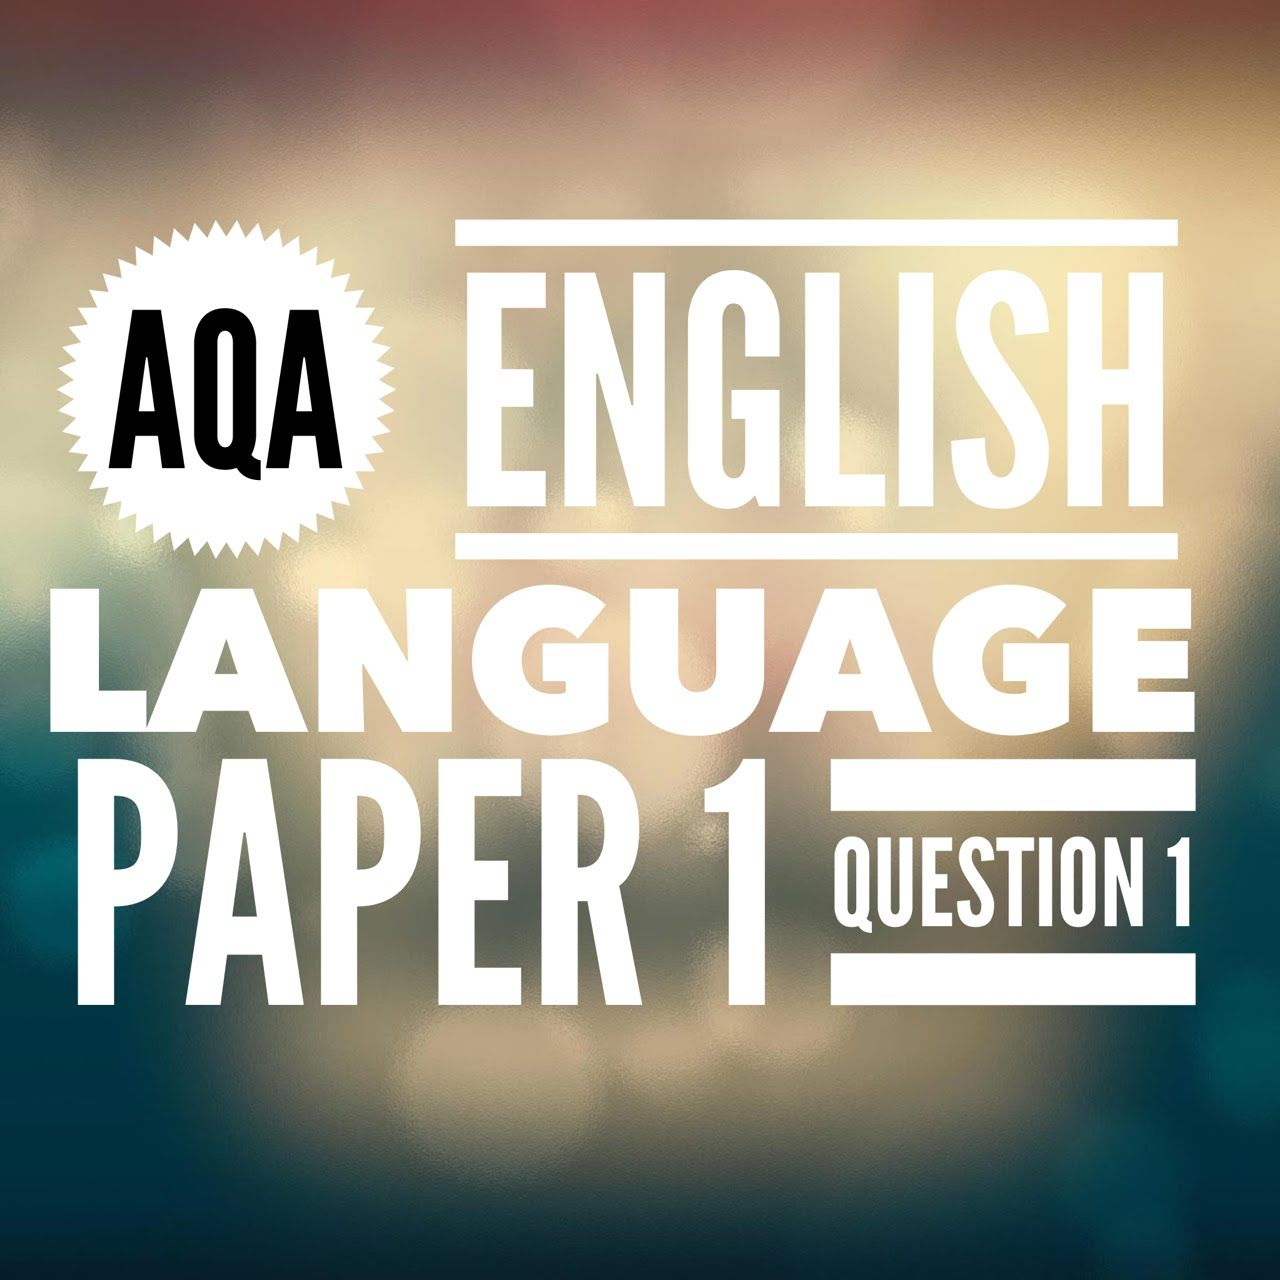 Aqa Gcse English Language Paper 1 Question 1 2017 Exam Education